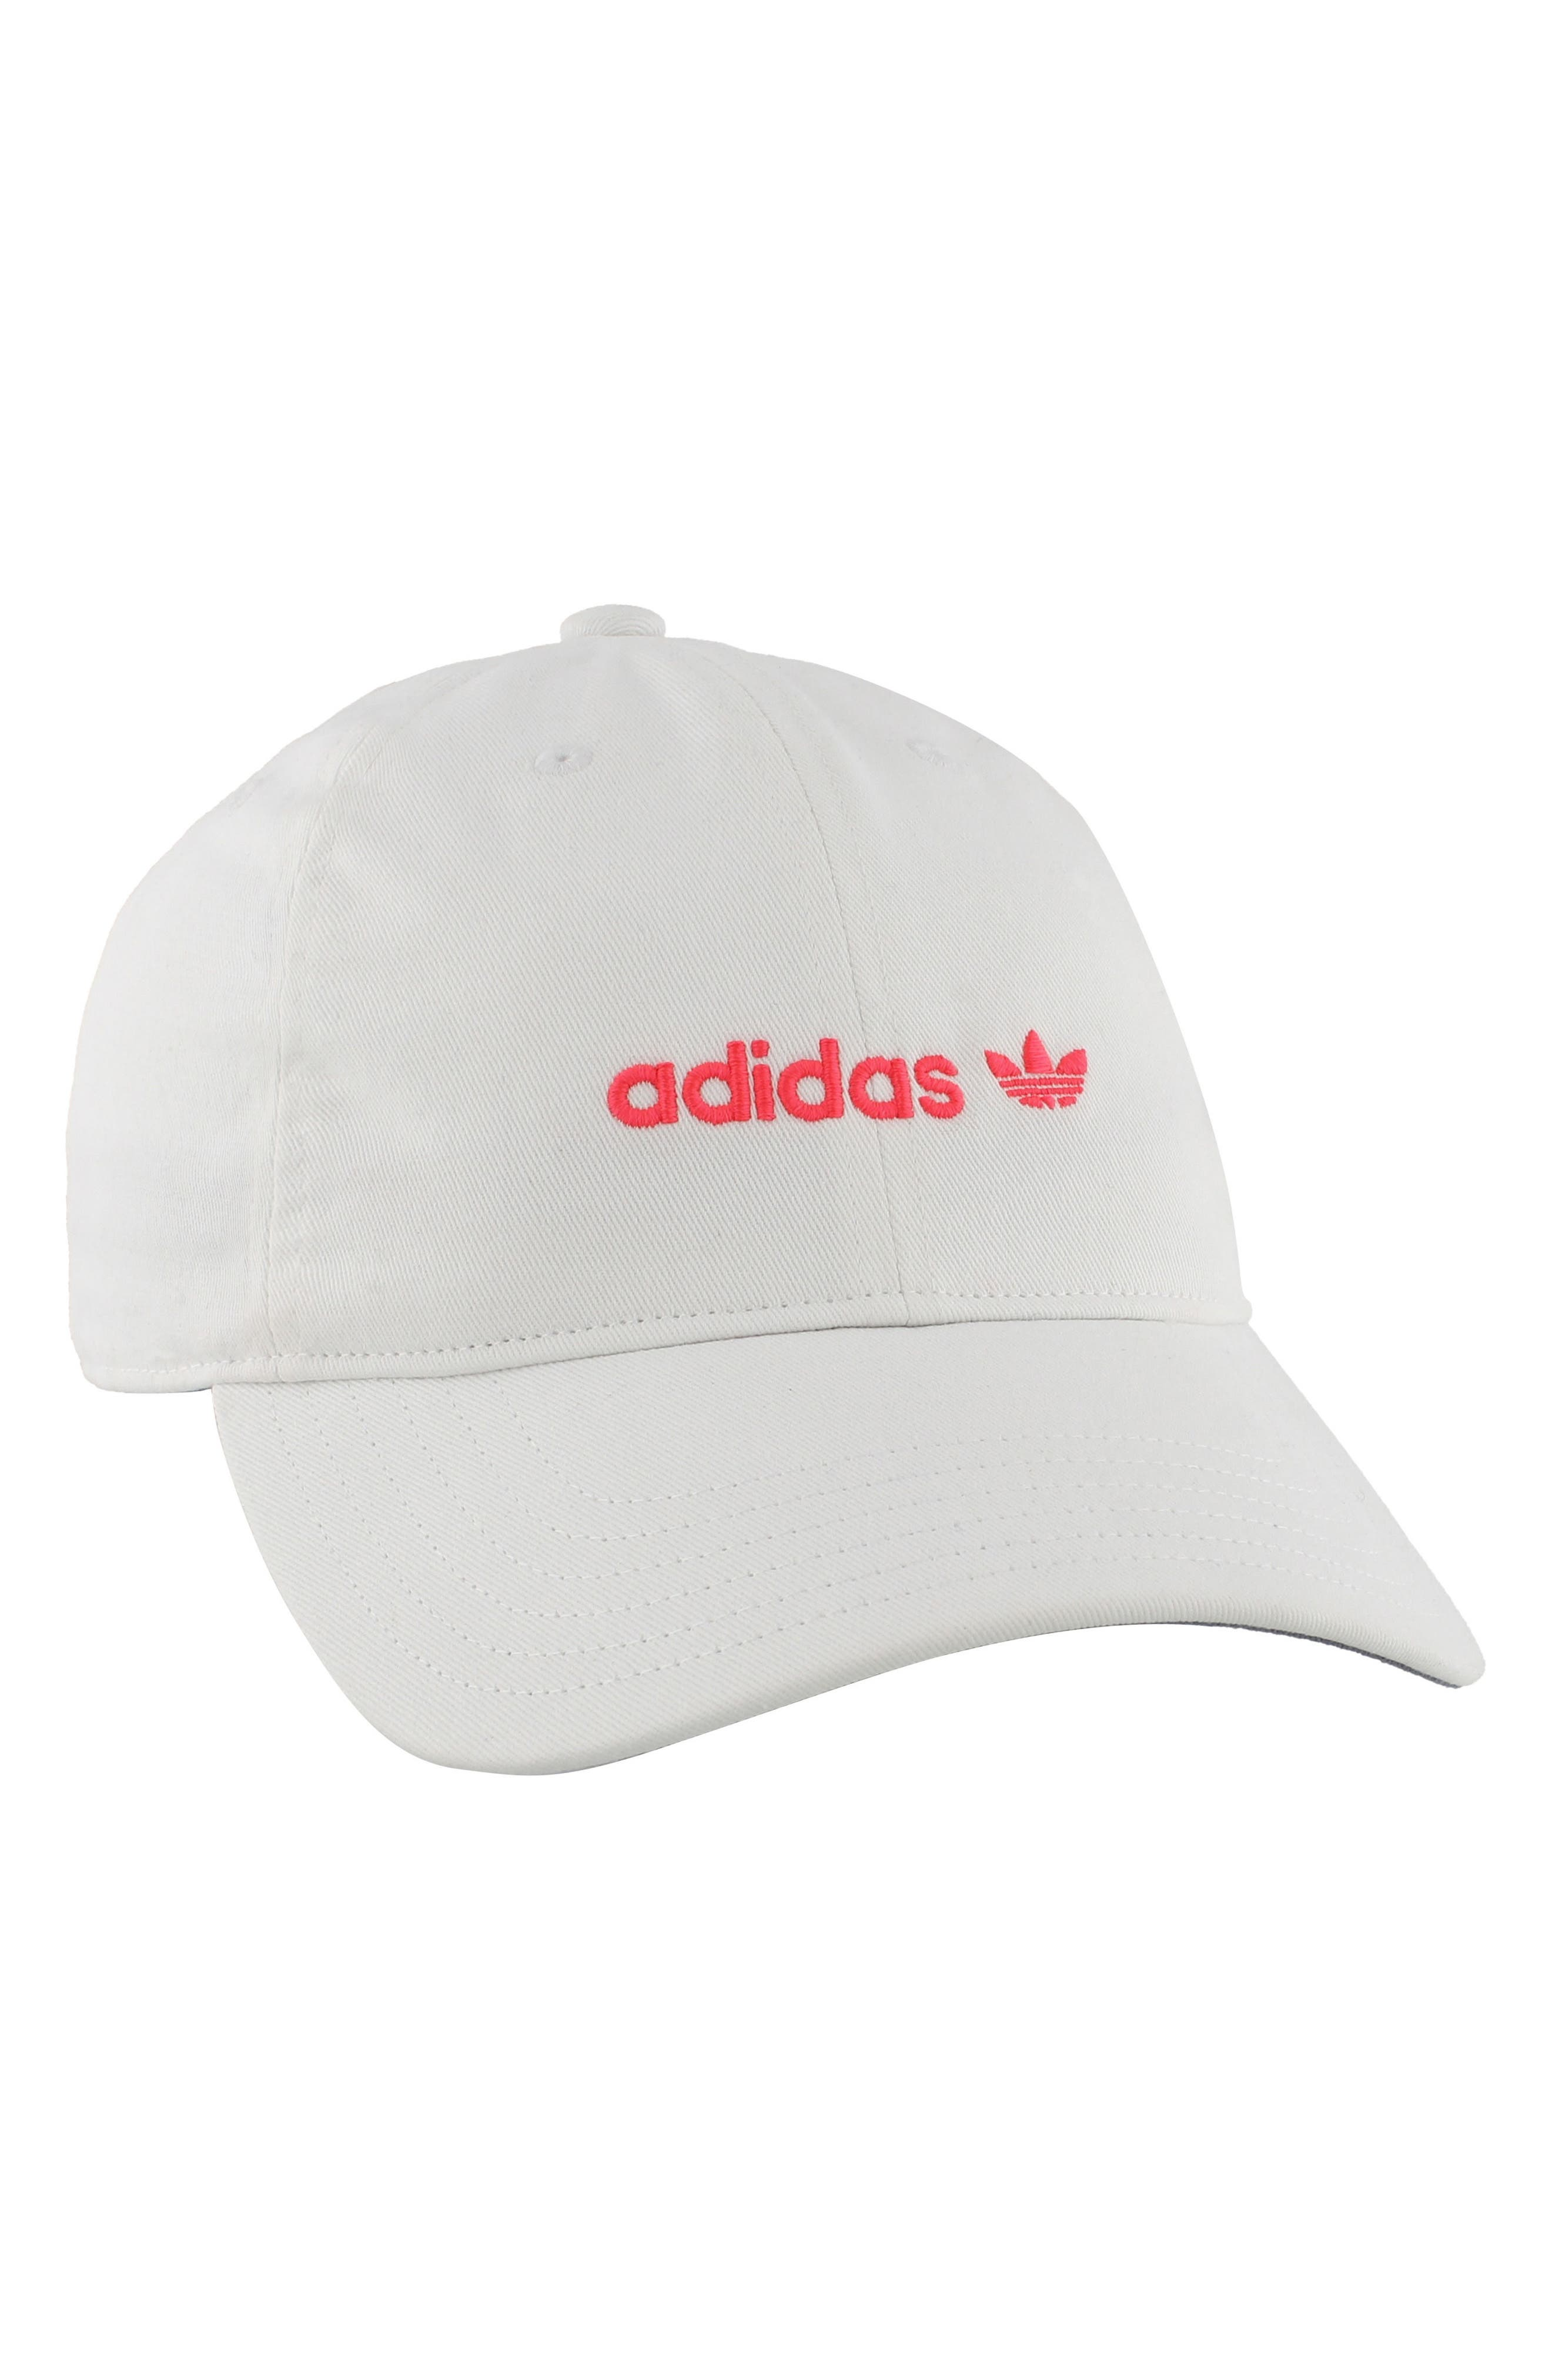 Originals Relaxed Strap-Back Cap,                             Main thumbnail 1, color,                             White/ Flash Red